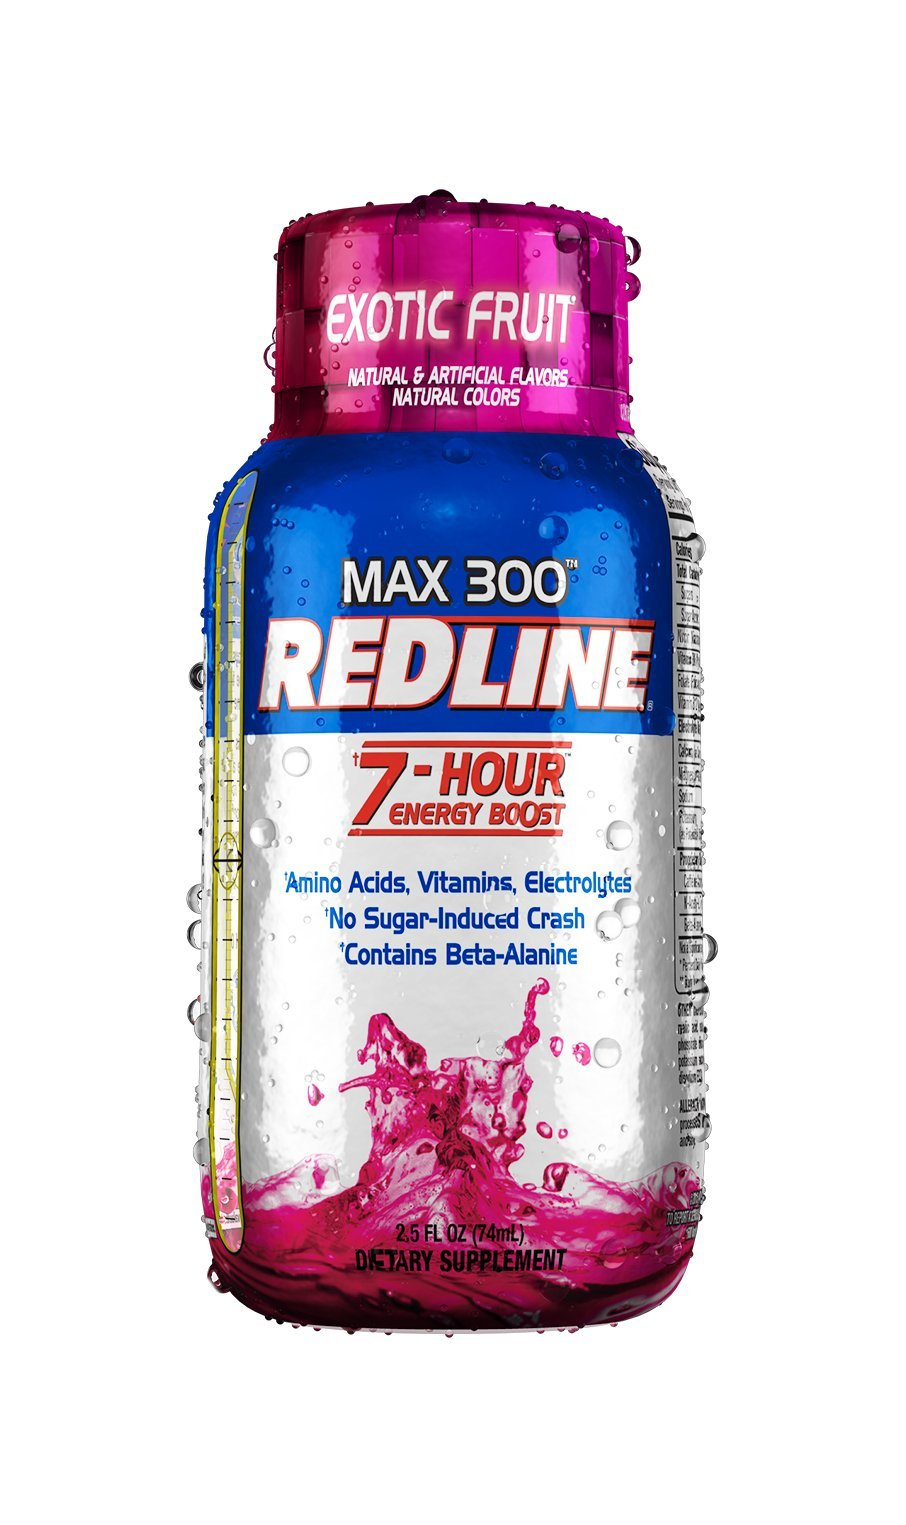 VPX Redline Power Rush 7-Hour Energy Max 3001 Shot Supplement, Exotic Fruit, 2.5 Ounce (Pack of 12) by VPX